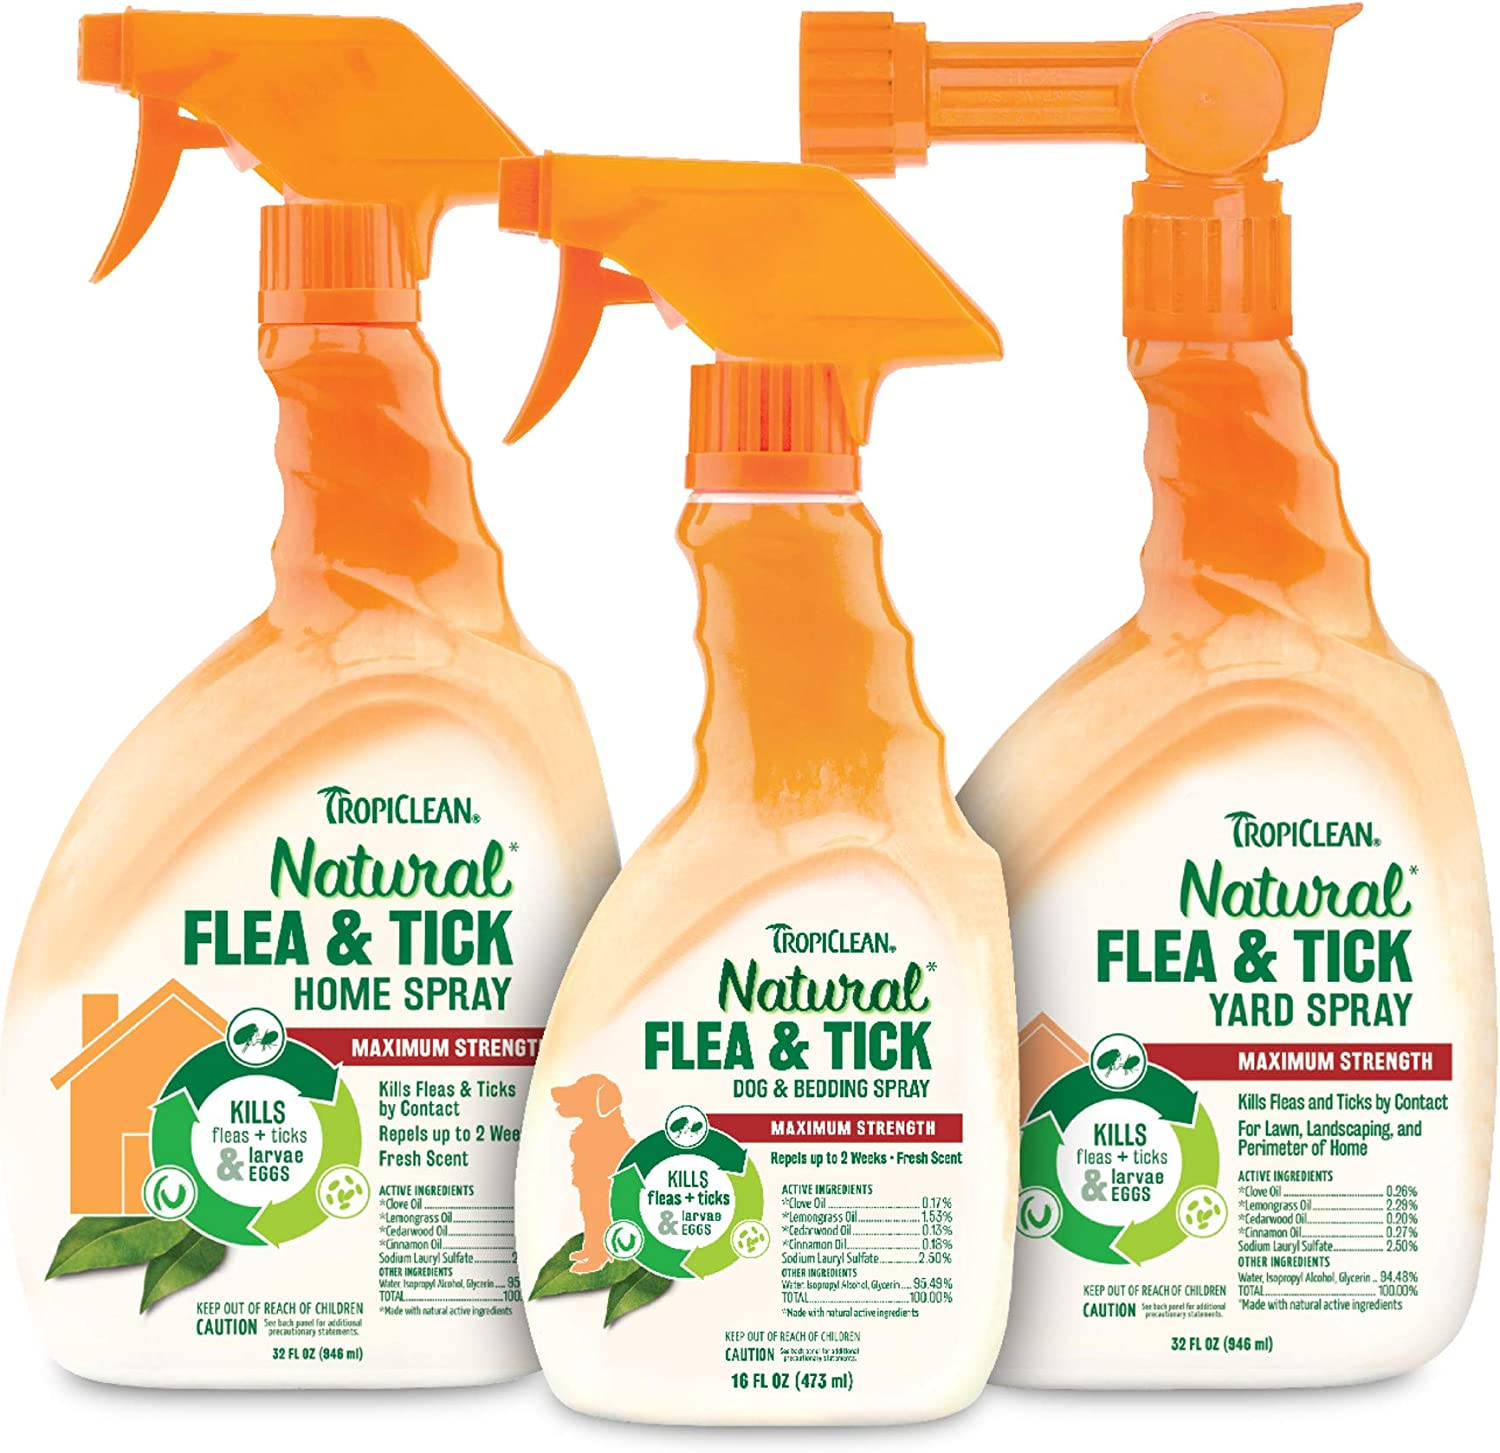 TropiClean Natural Flea & Tick Sprays & Powder for Dogs, Made in USA